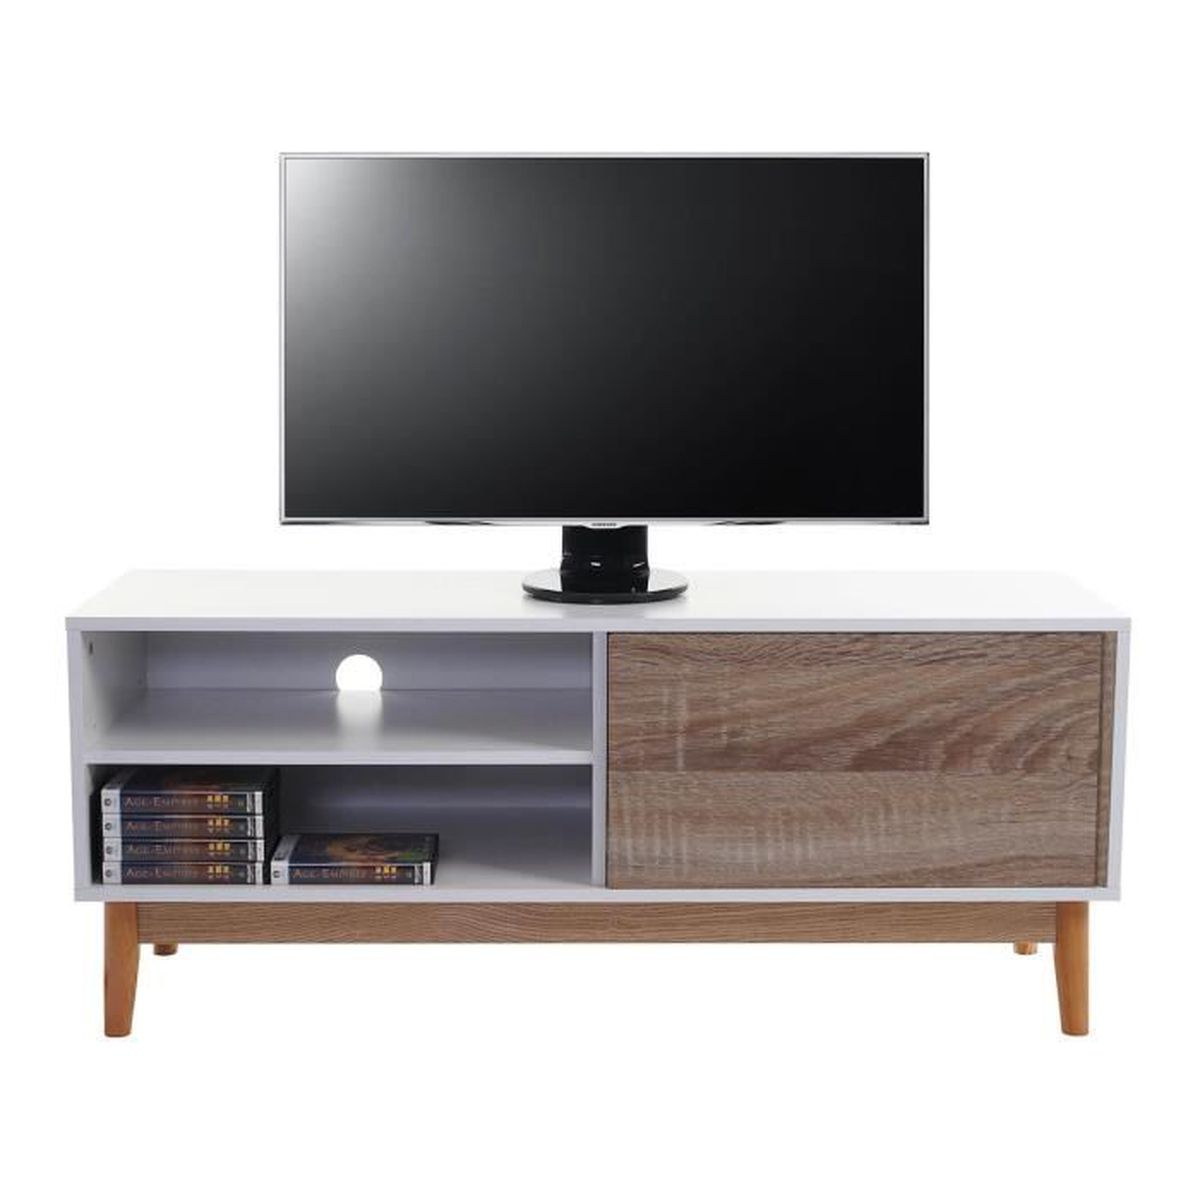 long meuble tv achat vente long meuble tv pas cher soldes d s le 10 janvier cdiscount. Black Bedroom Furniture Sets. Home Design Ideas